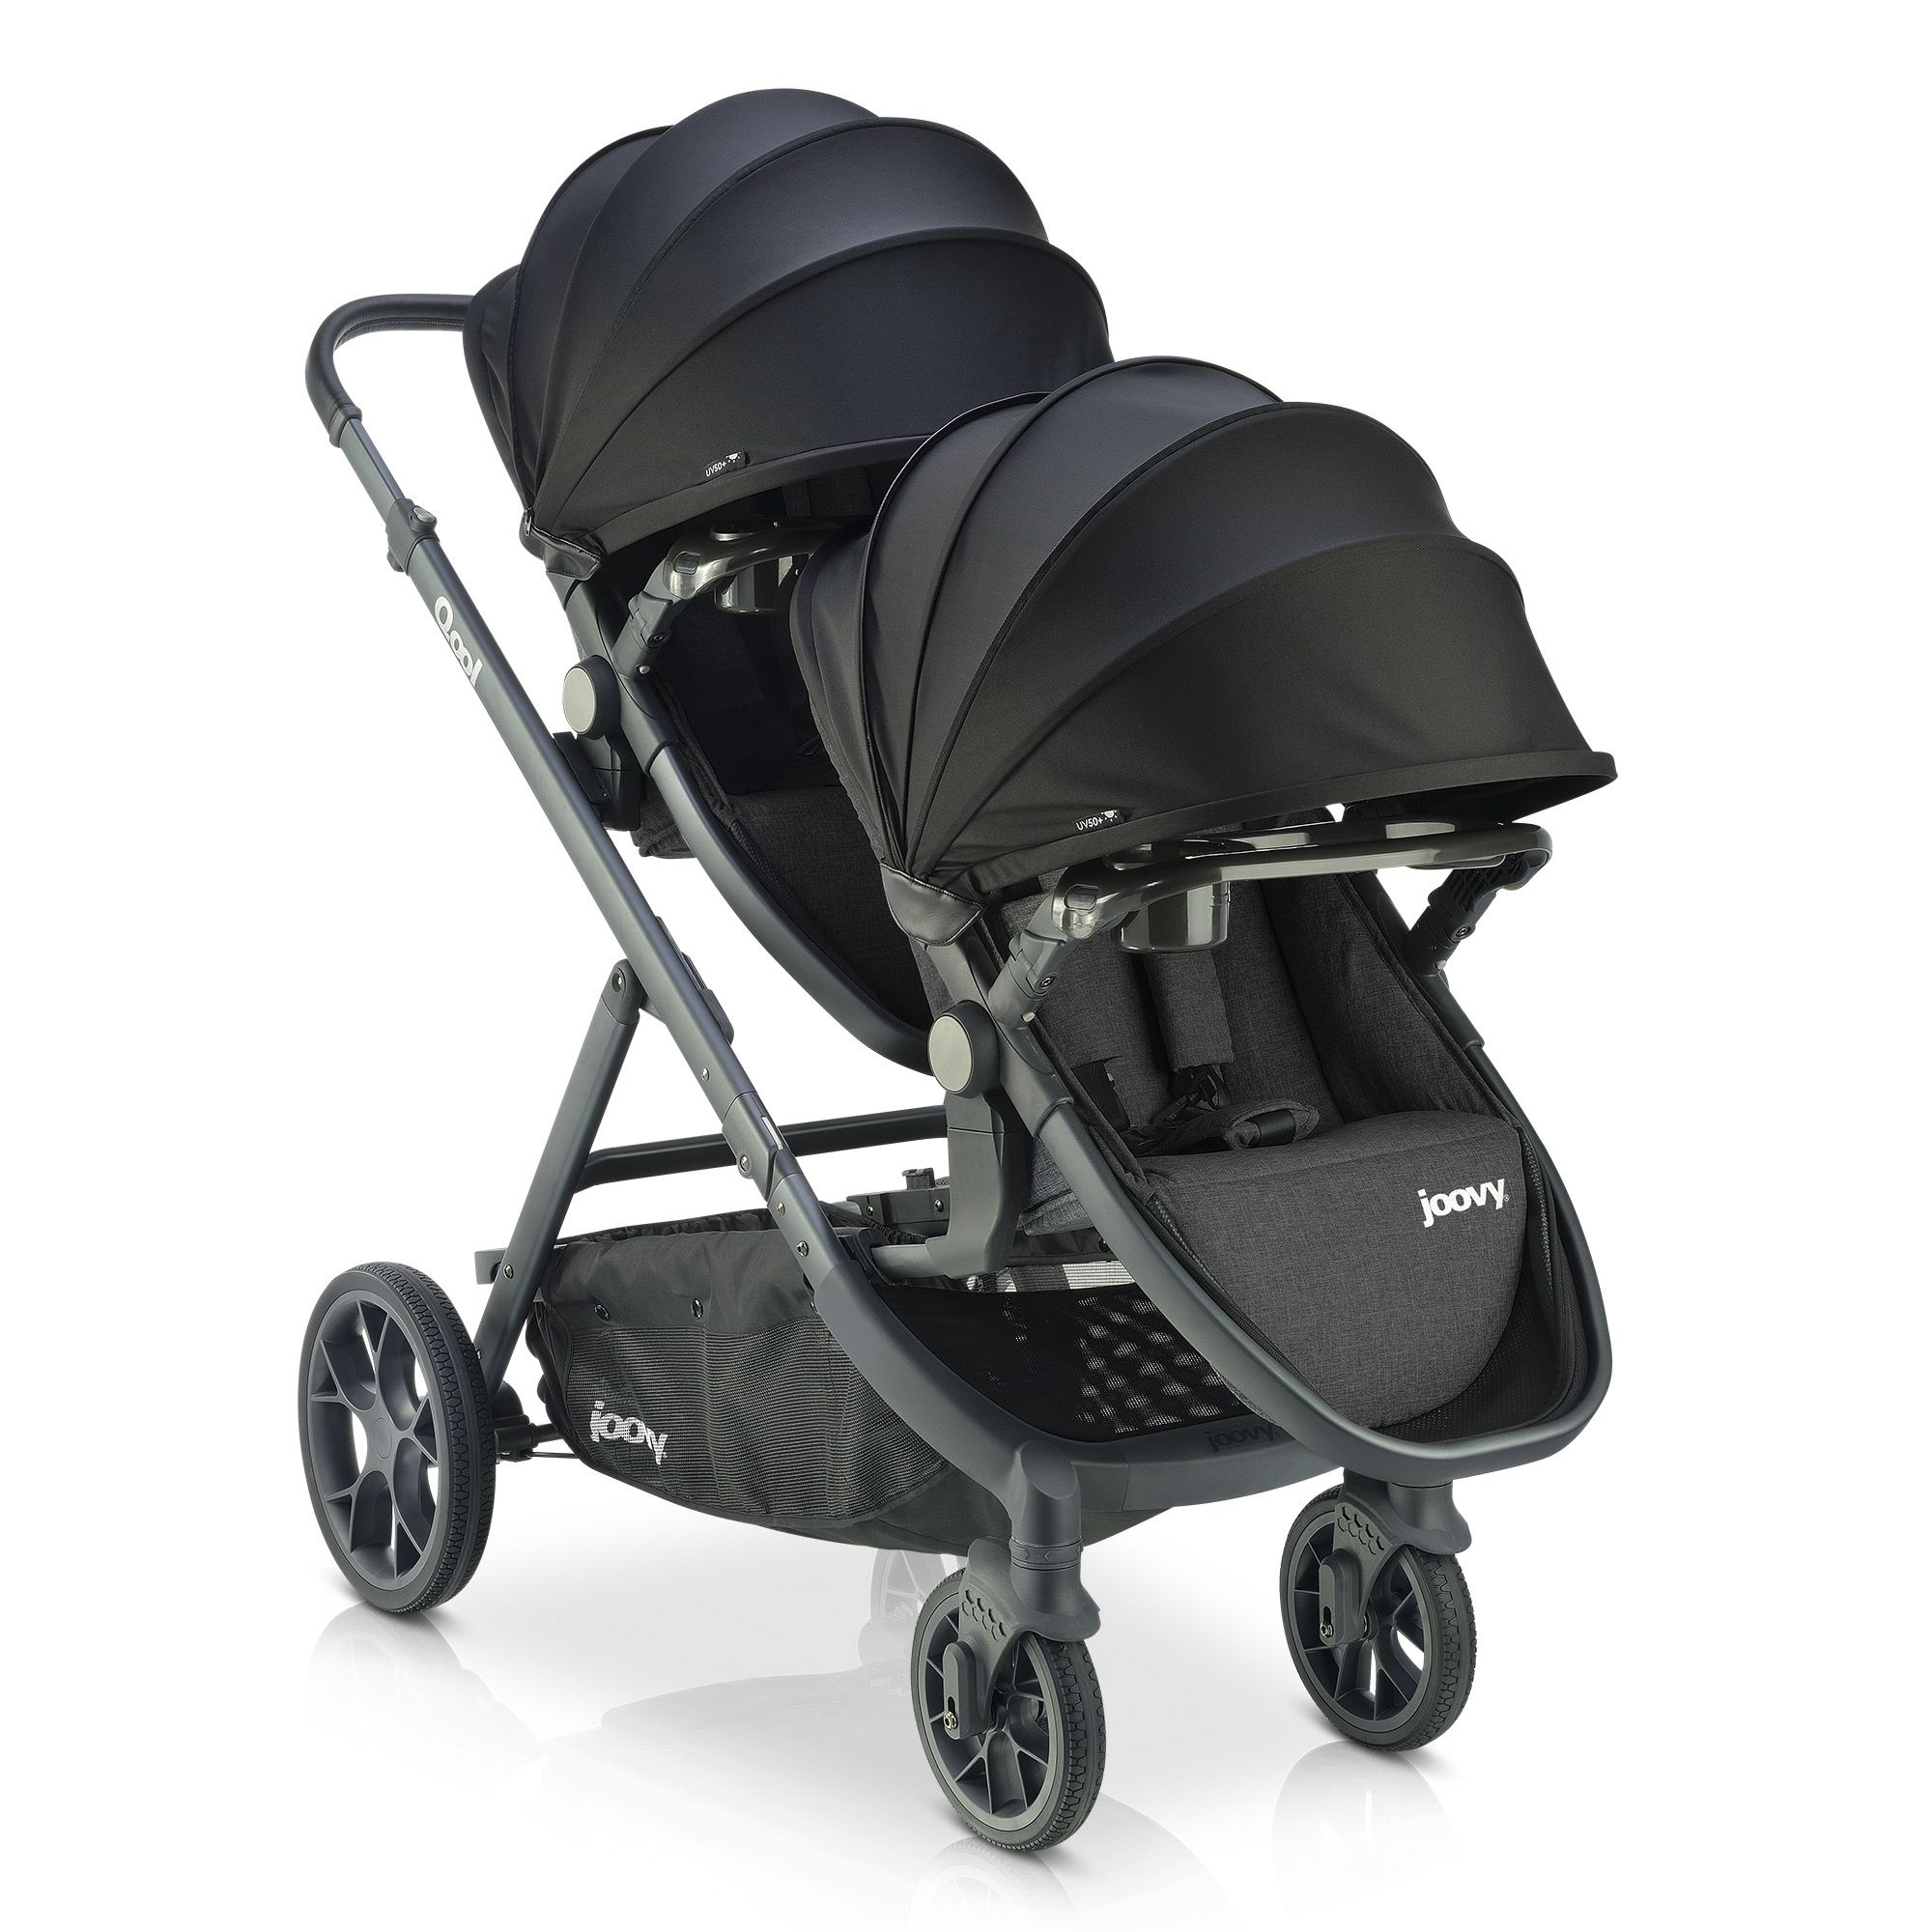 Qool Stroller, Convertible stroller, Car seat and stroller